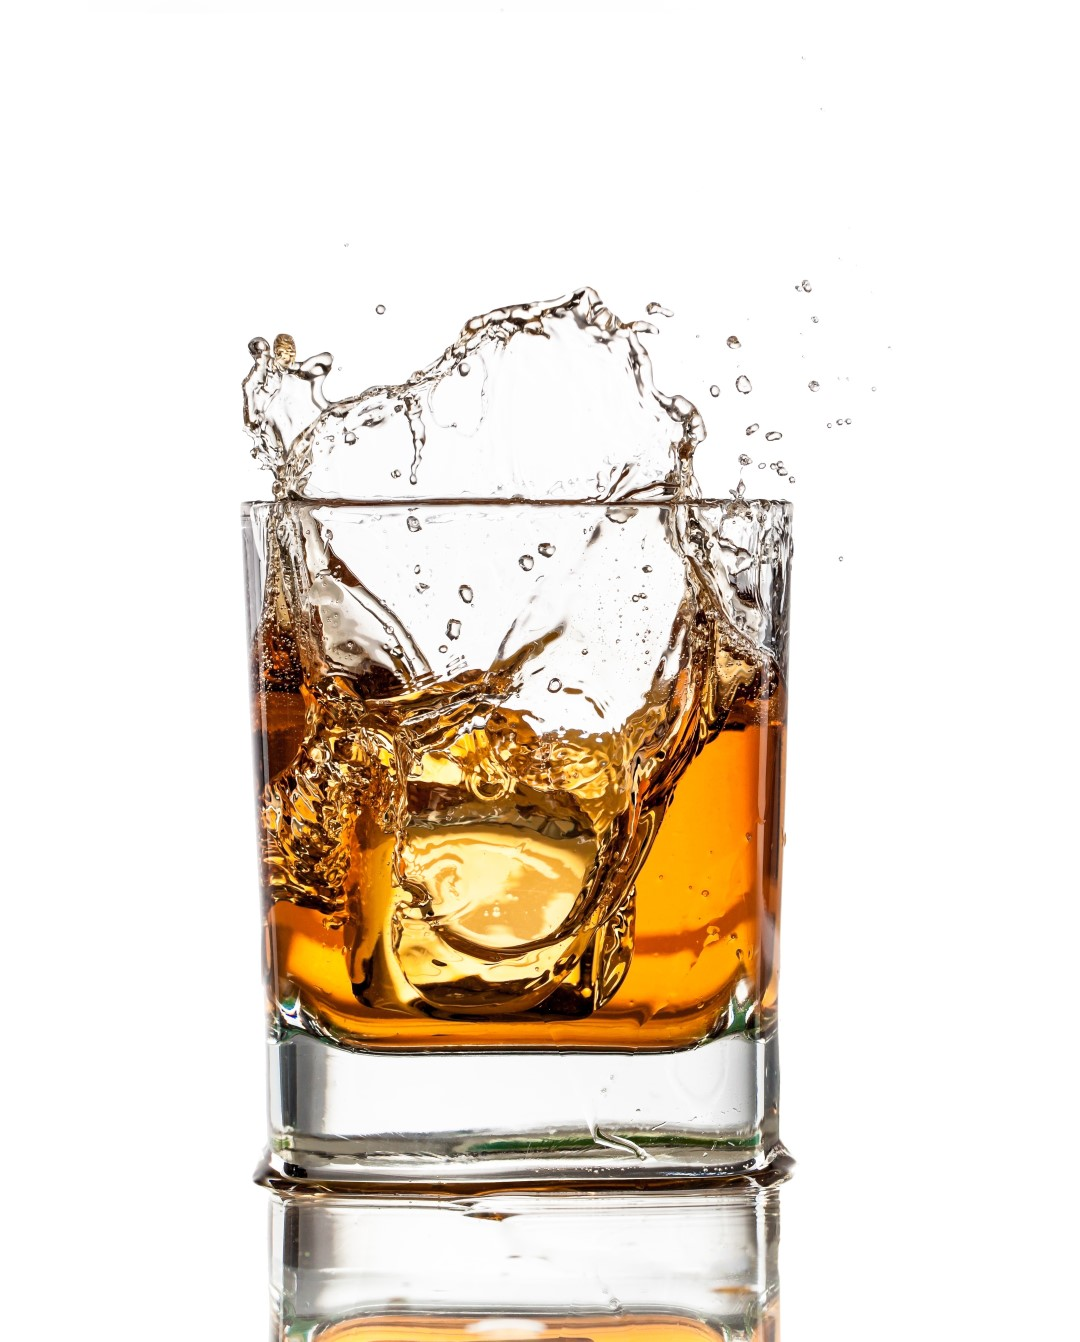 Whisky Is The New Gin photo